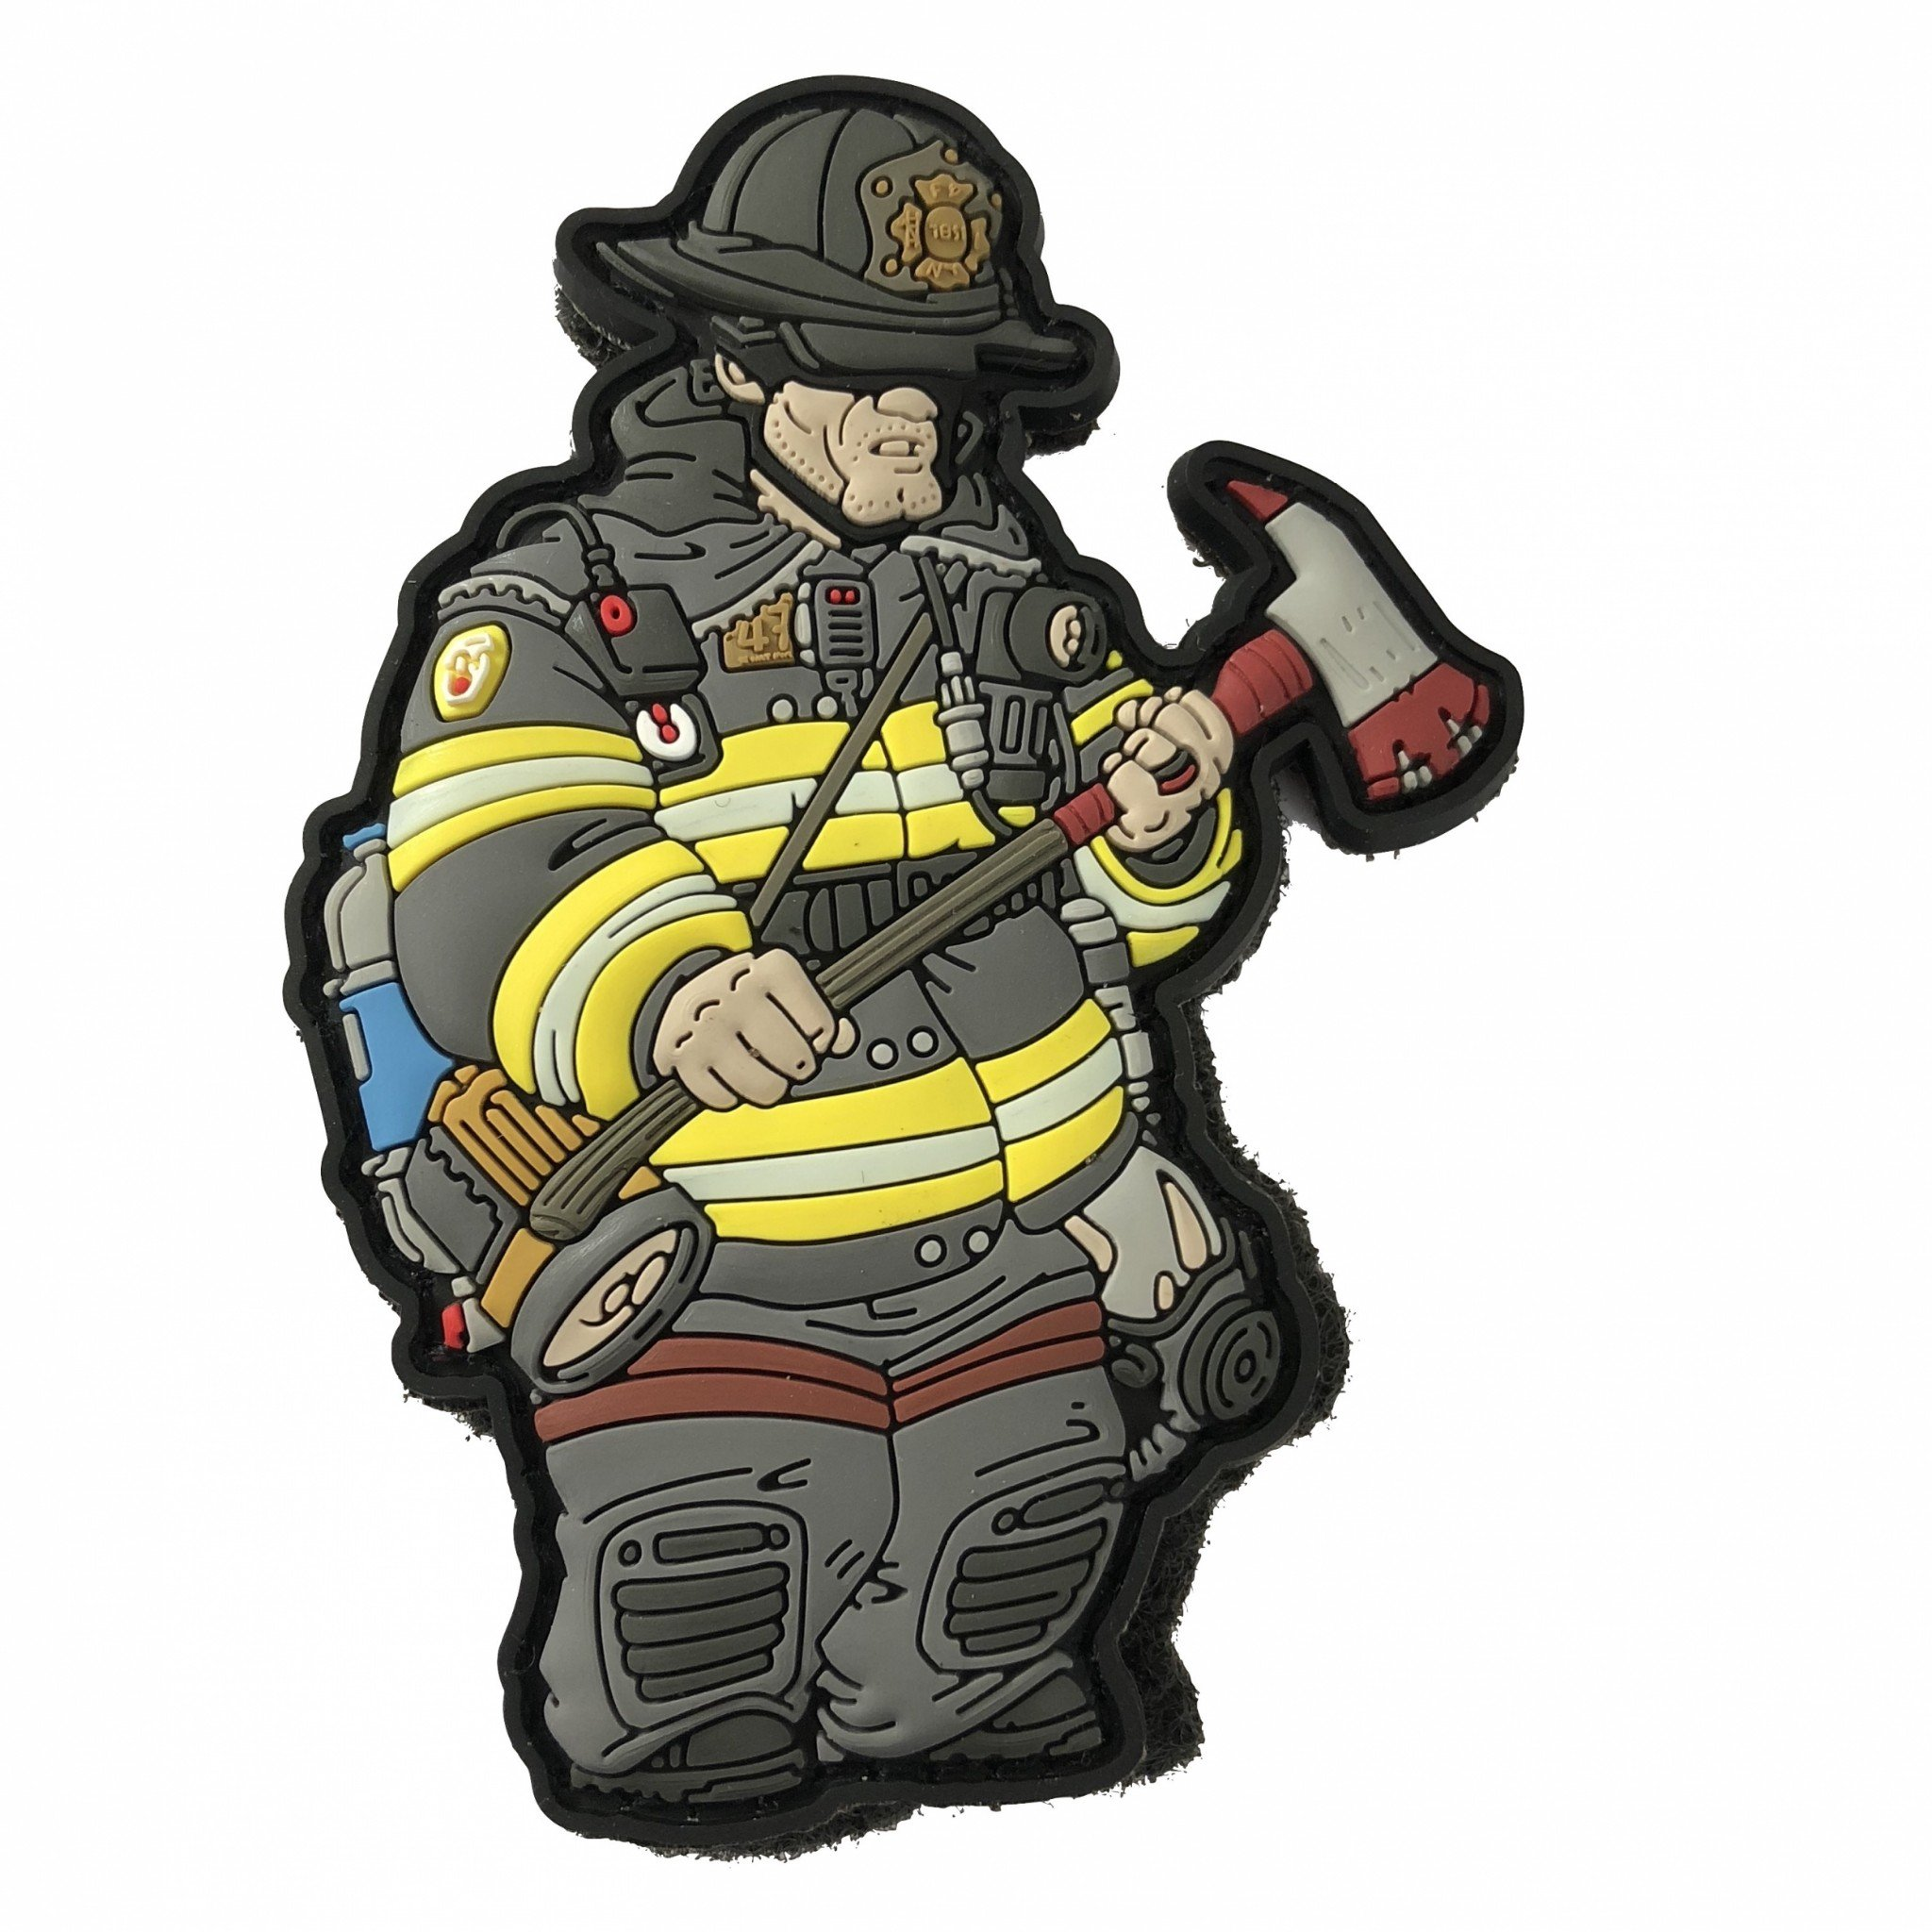 Operator Patch – NYFD Firefighter